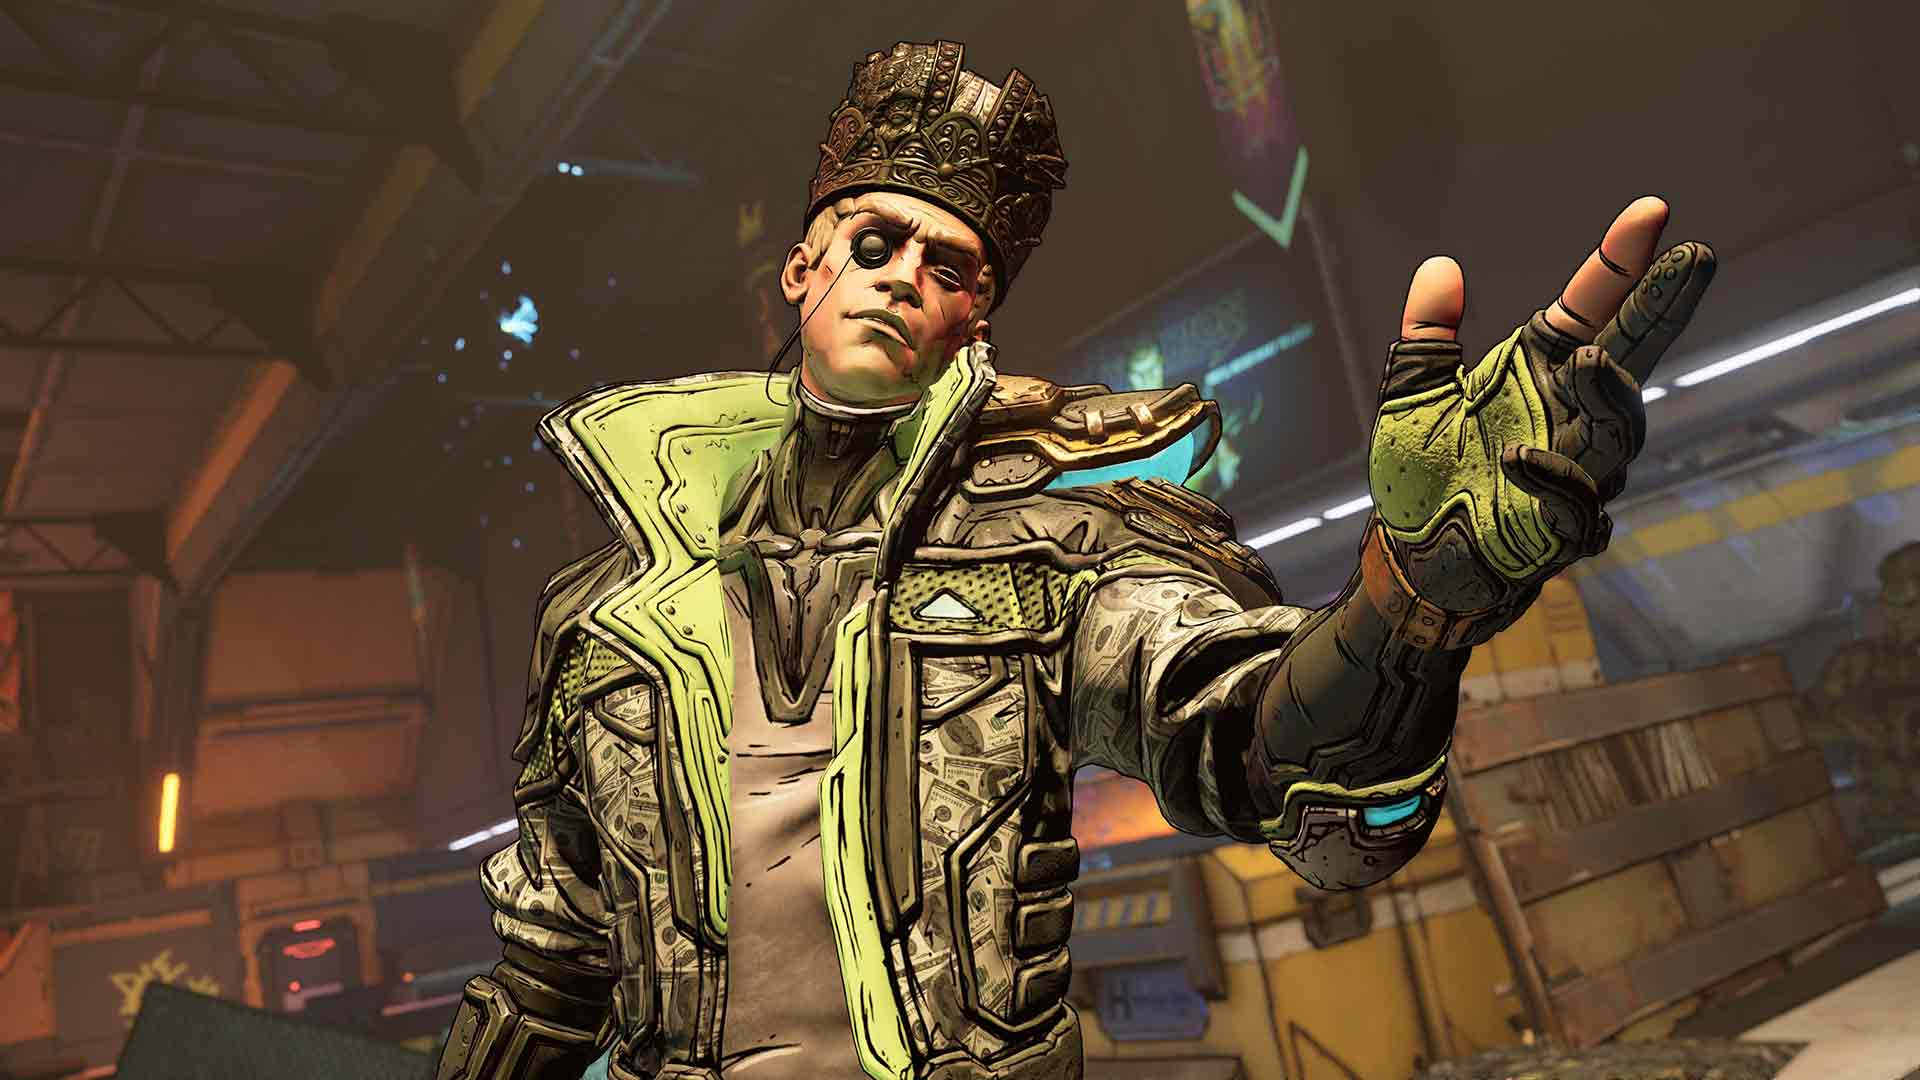 Borderlands 3: Moxxi's Heist Of The Handsome Jackpot (Epic) game image